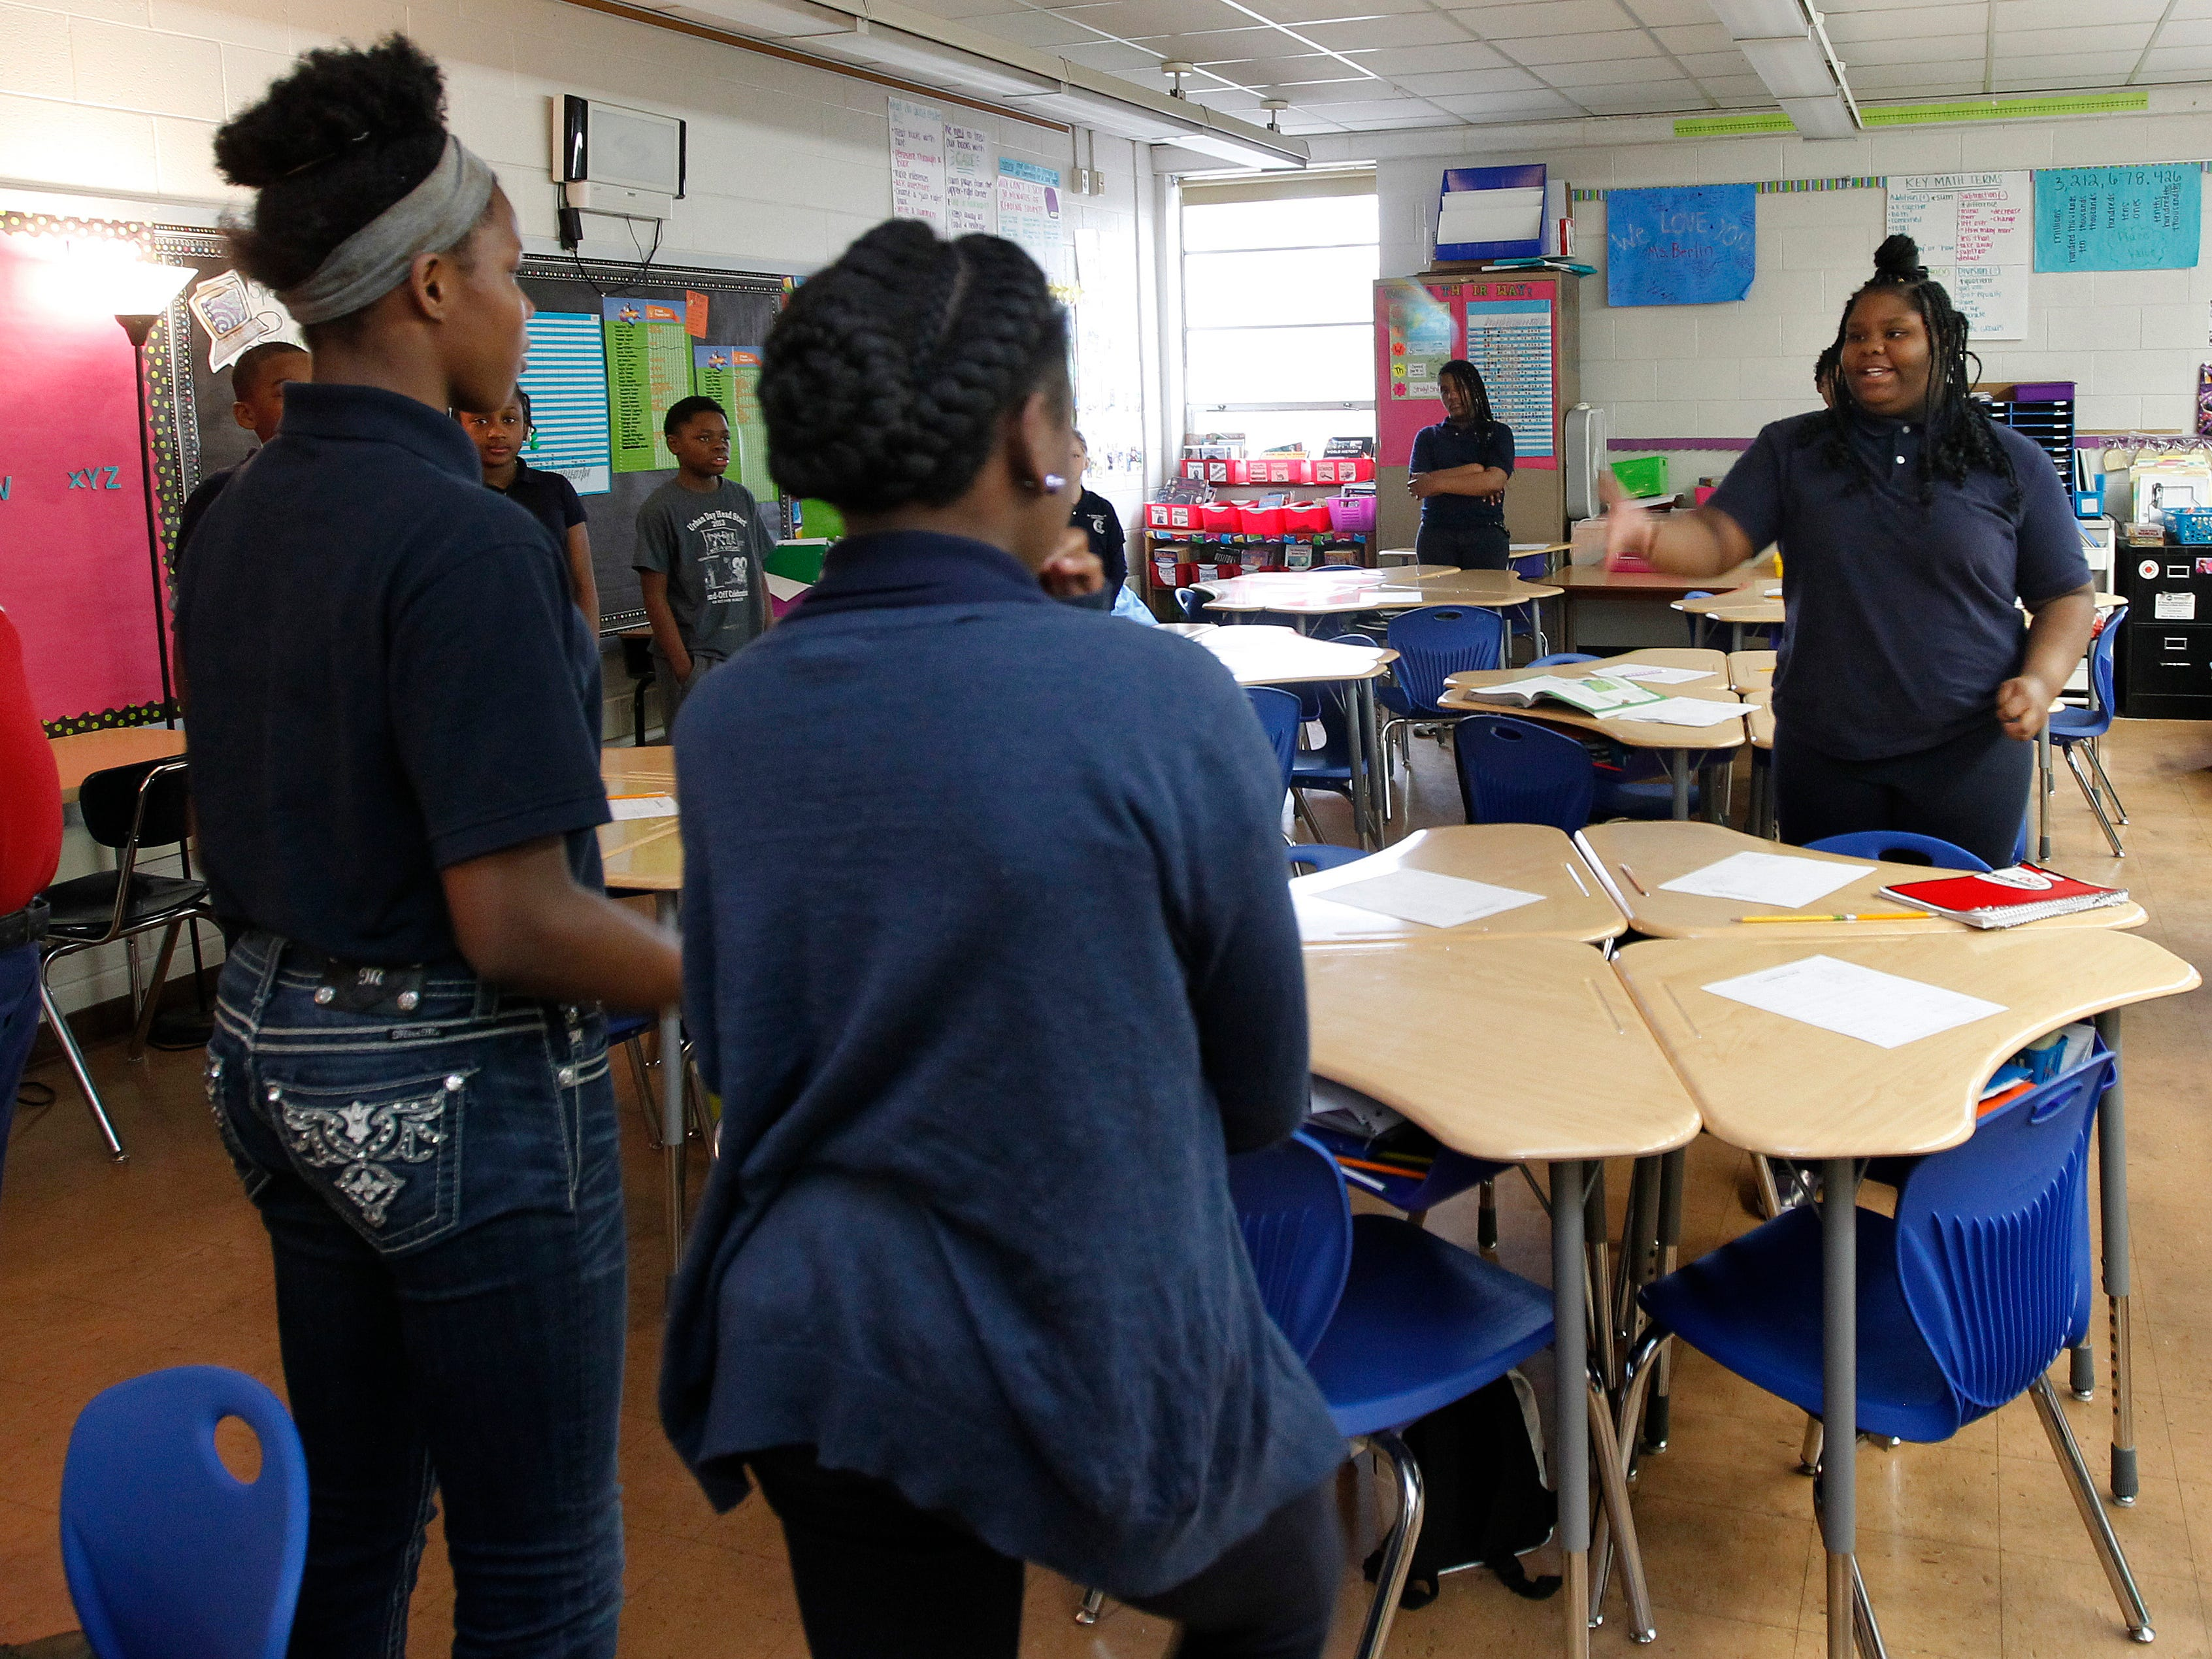 Anievia (cq) Harps, 6th grader in the center of circle, participate in the 'Circle of Power and Respect' activity at Carver Academy on Friday, April 13, 2018. This activity helps build strong social relations among students and faculty.